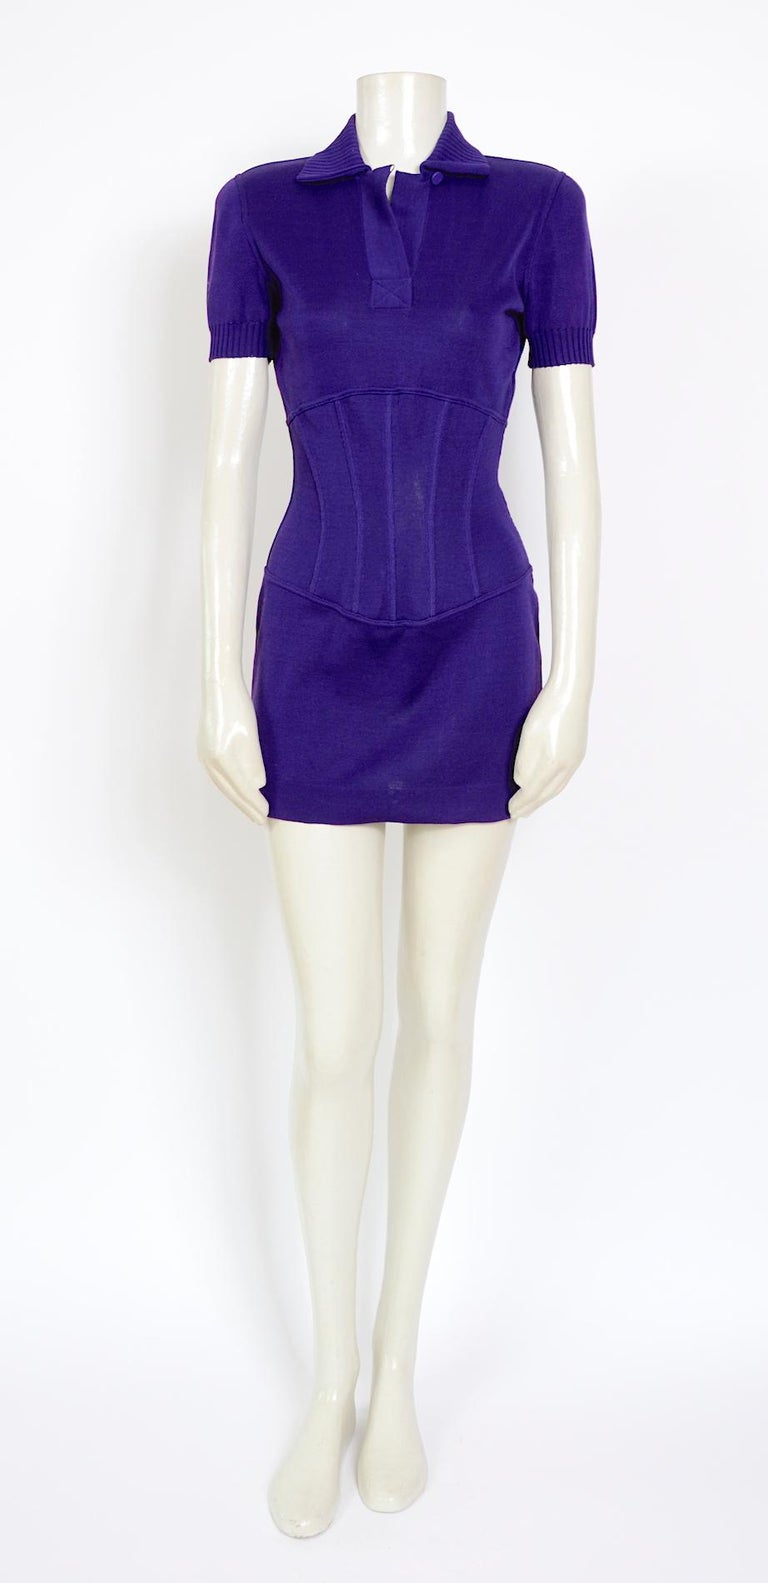 Beautiful vintage spring/summer 1995 cotton jersey corset mini dress by Karl Lagerfeld. Made in Italy - size 40  Measurements are taken flat: Sh to Sh 15inch/38cm - Ua to Ua 17inch/43cm(x2) - Waist 12inch/31cm(x2) - Hip 17inch/43cm(x2) - Total